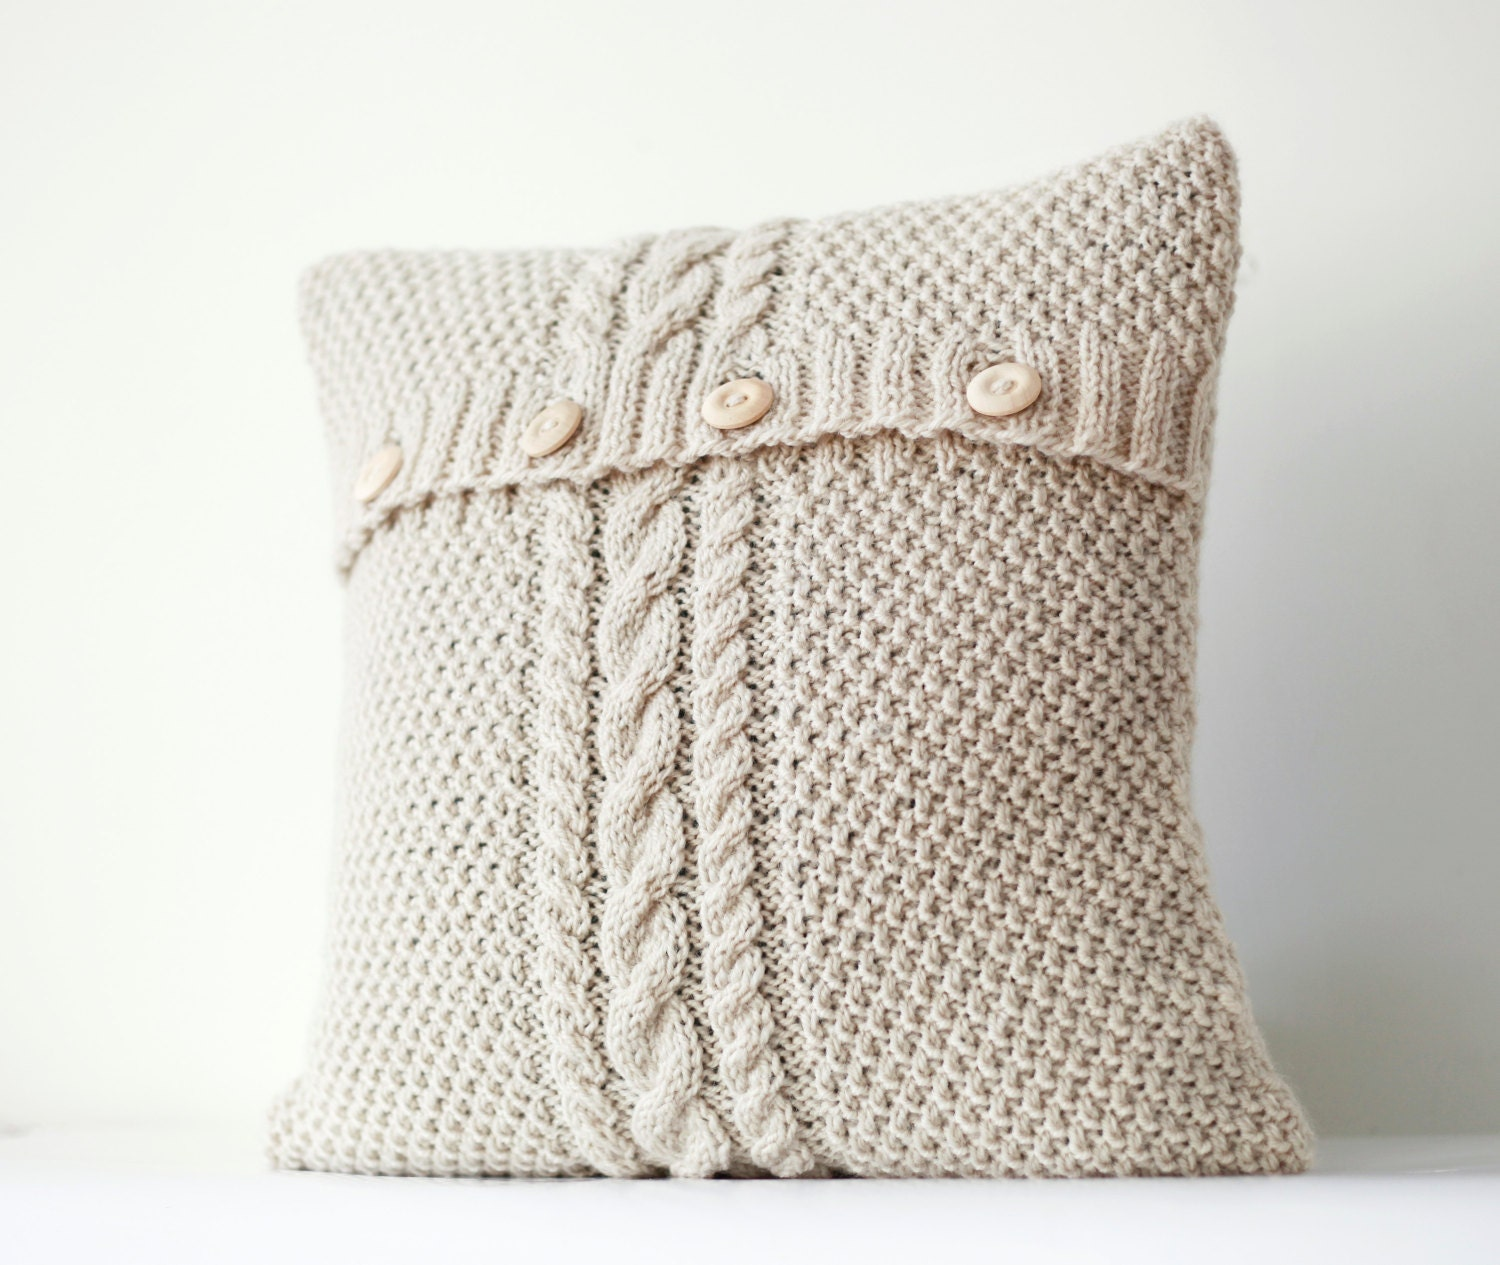 Modern Knitted Pillow : Cable hand knitted pillow cover ivory decorative pillows